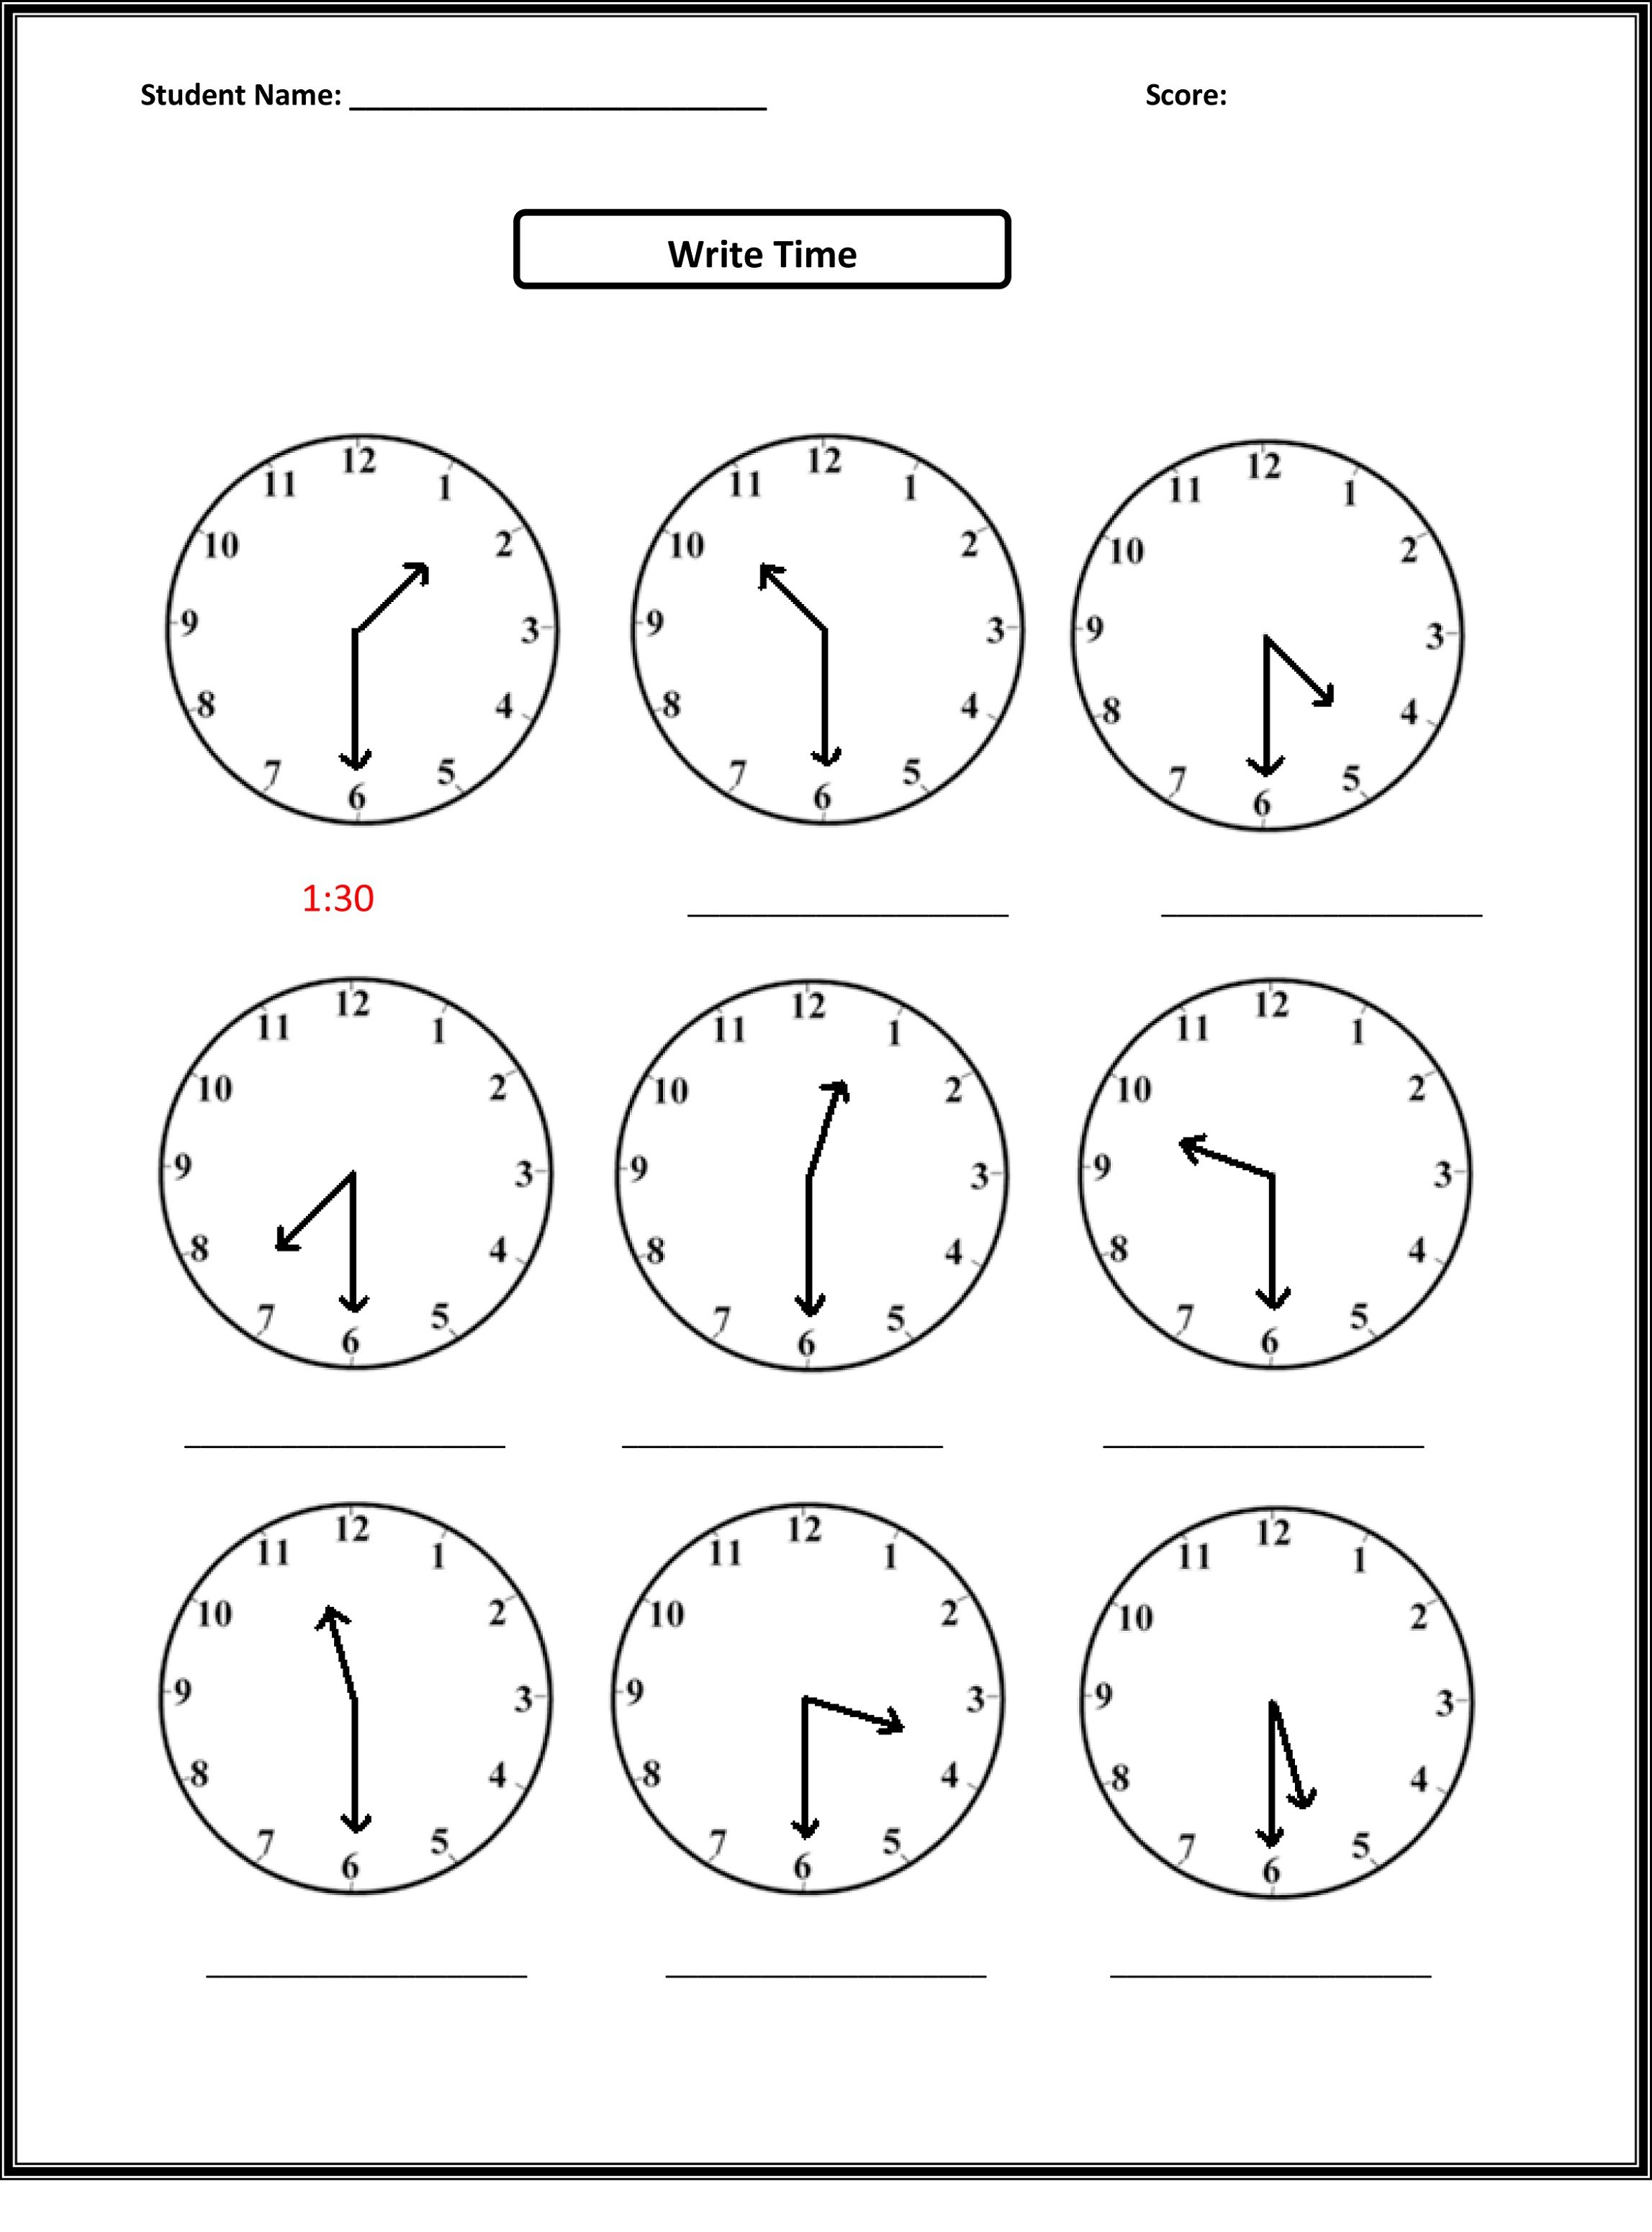 Worksheets Measuring Time Worksheets excellent free elapsed time worksheet og teaching worksheets easy activity shelter